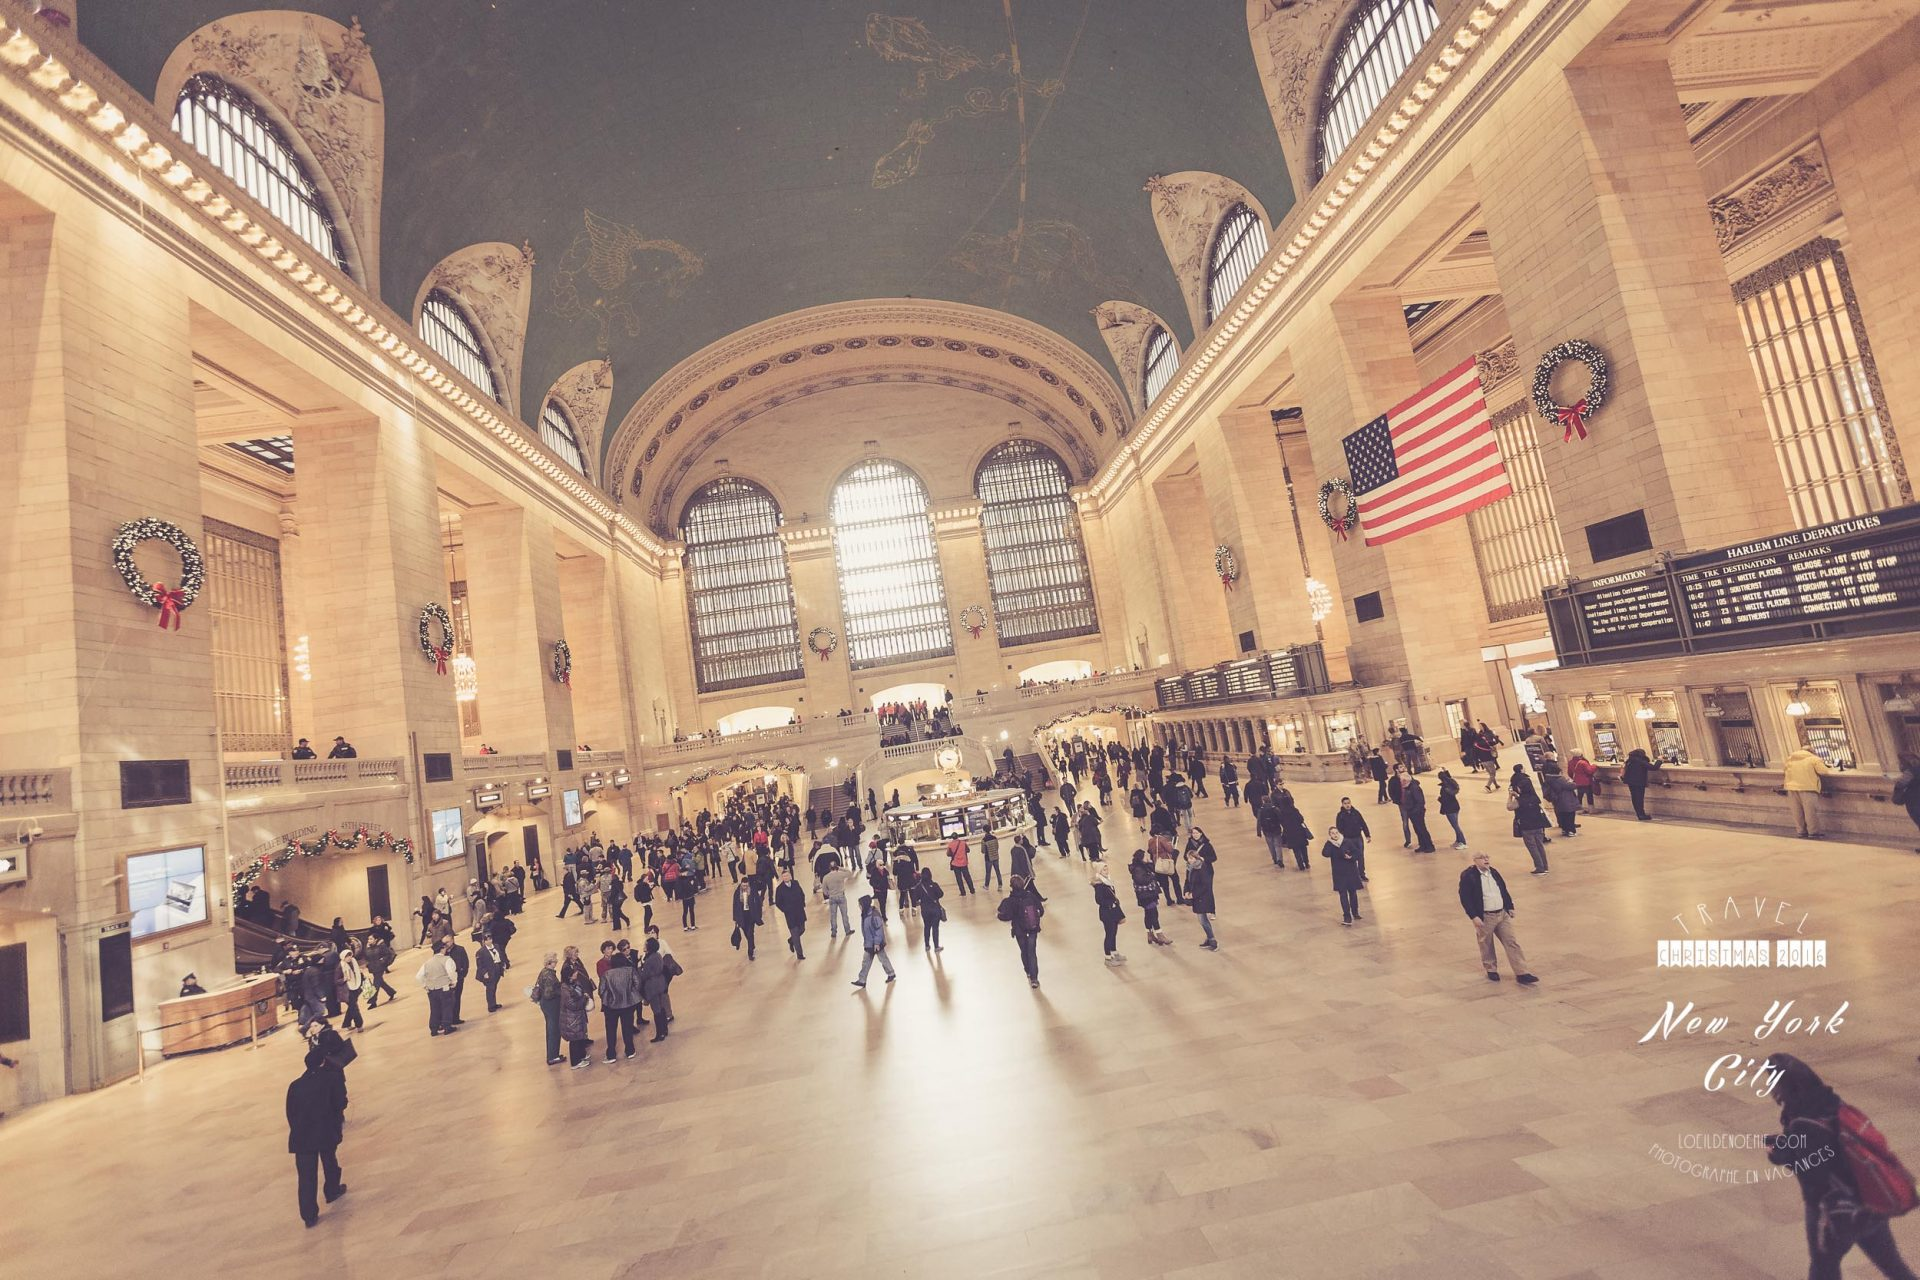 grand central terminal nyc, manhattan, gare new york, by L'oeil de Noémie photographer in new york city